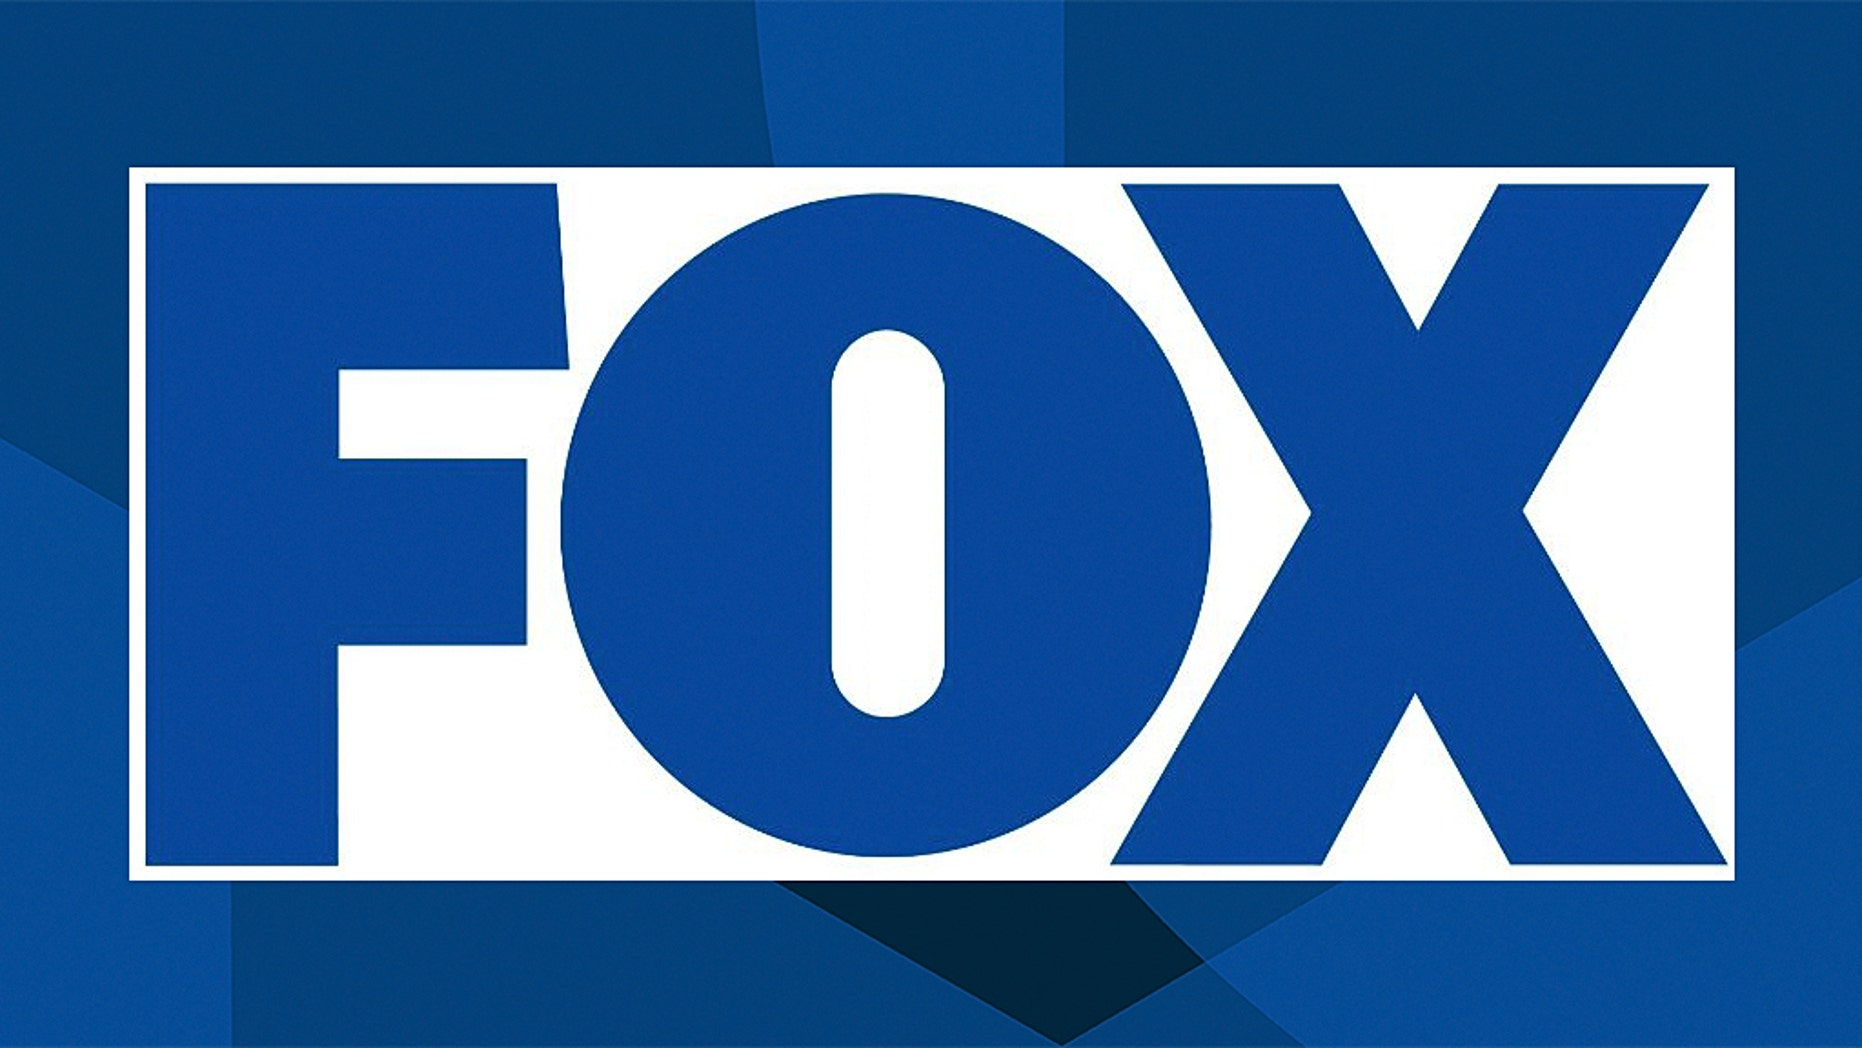 Disney completes $71B acquisition of much of Fox entertainment